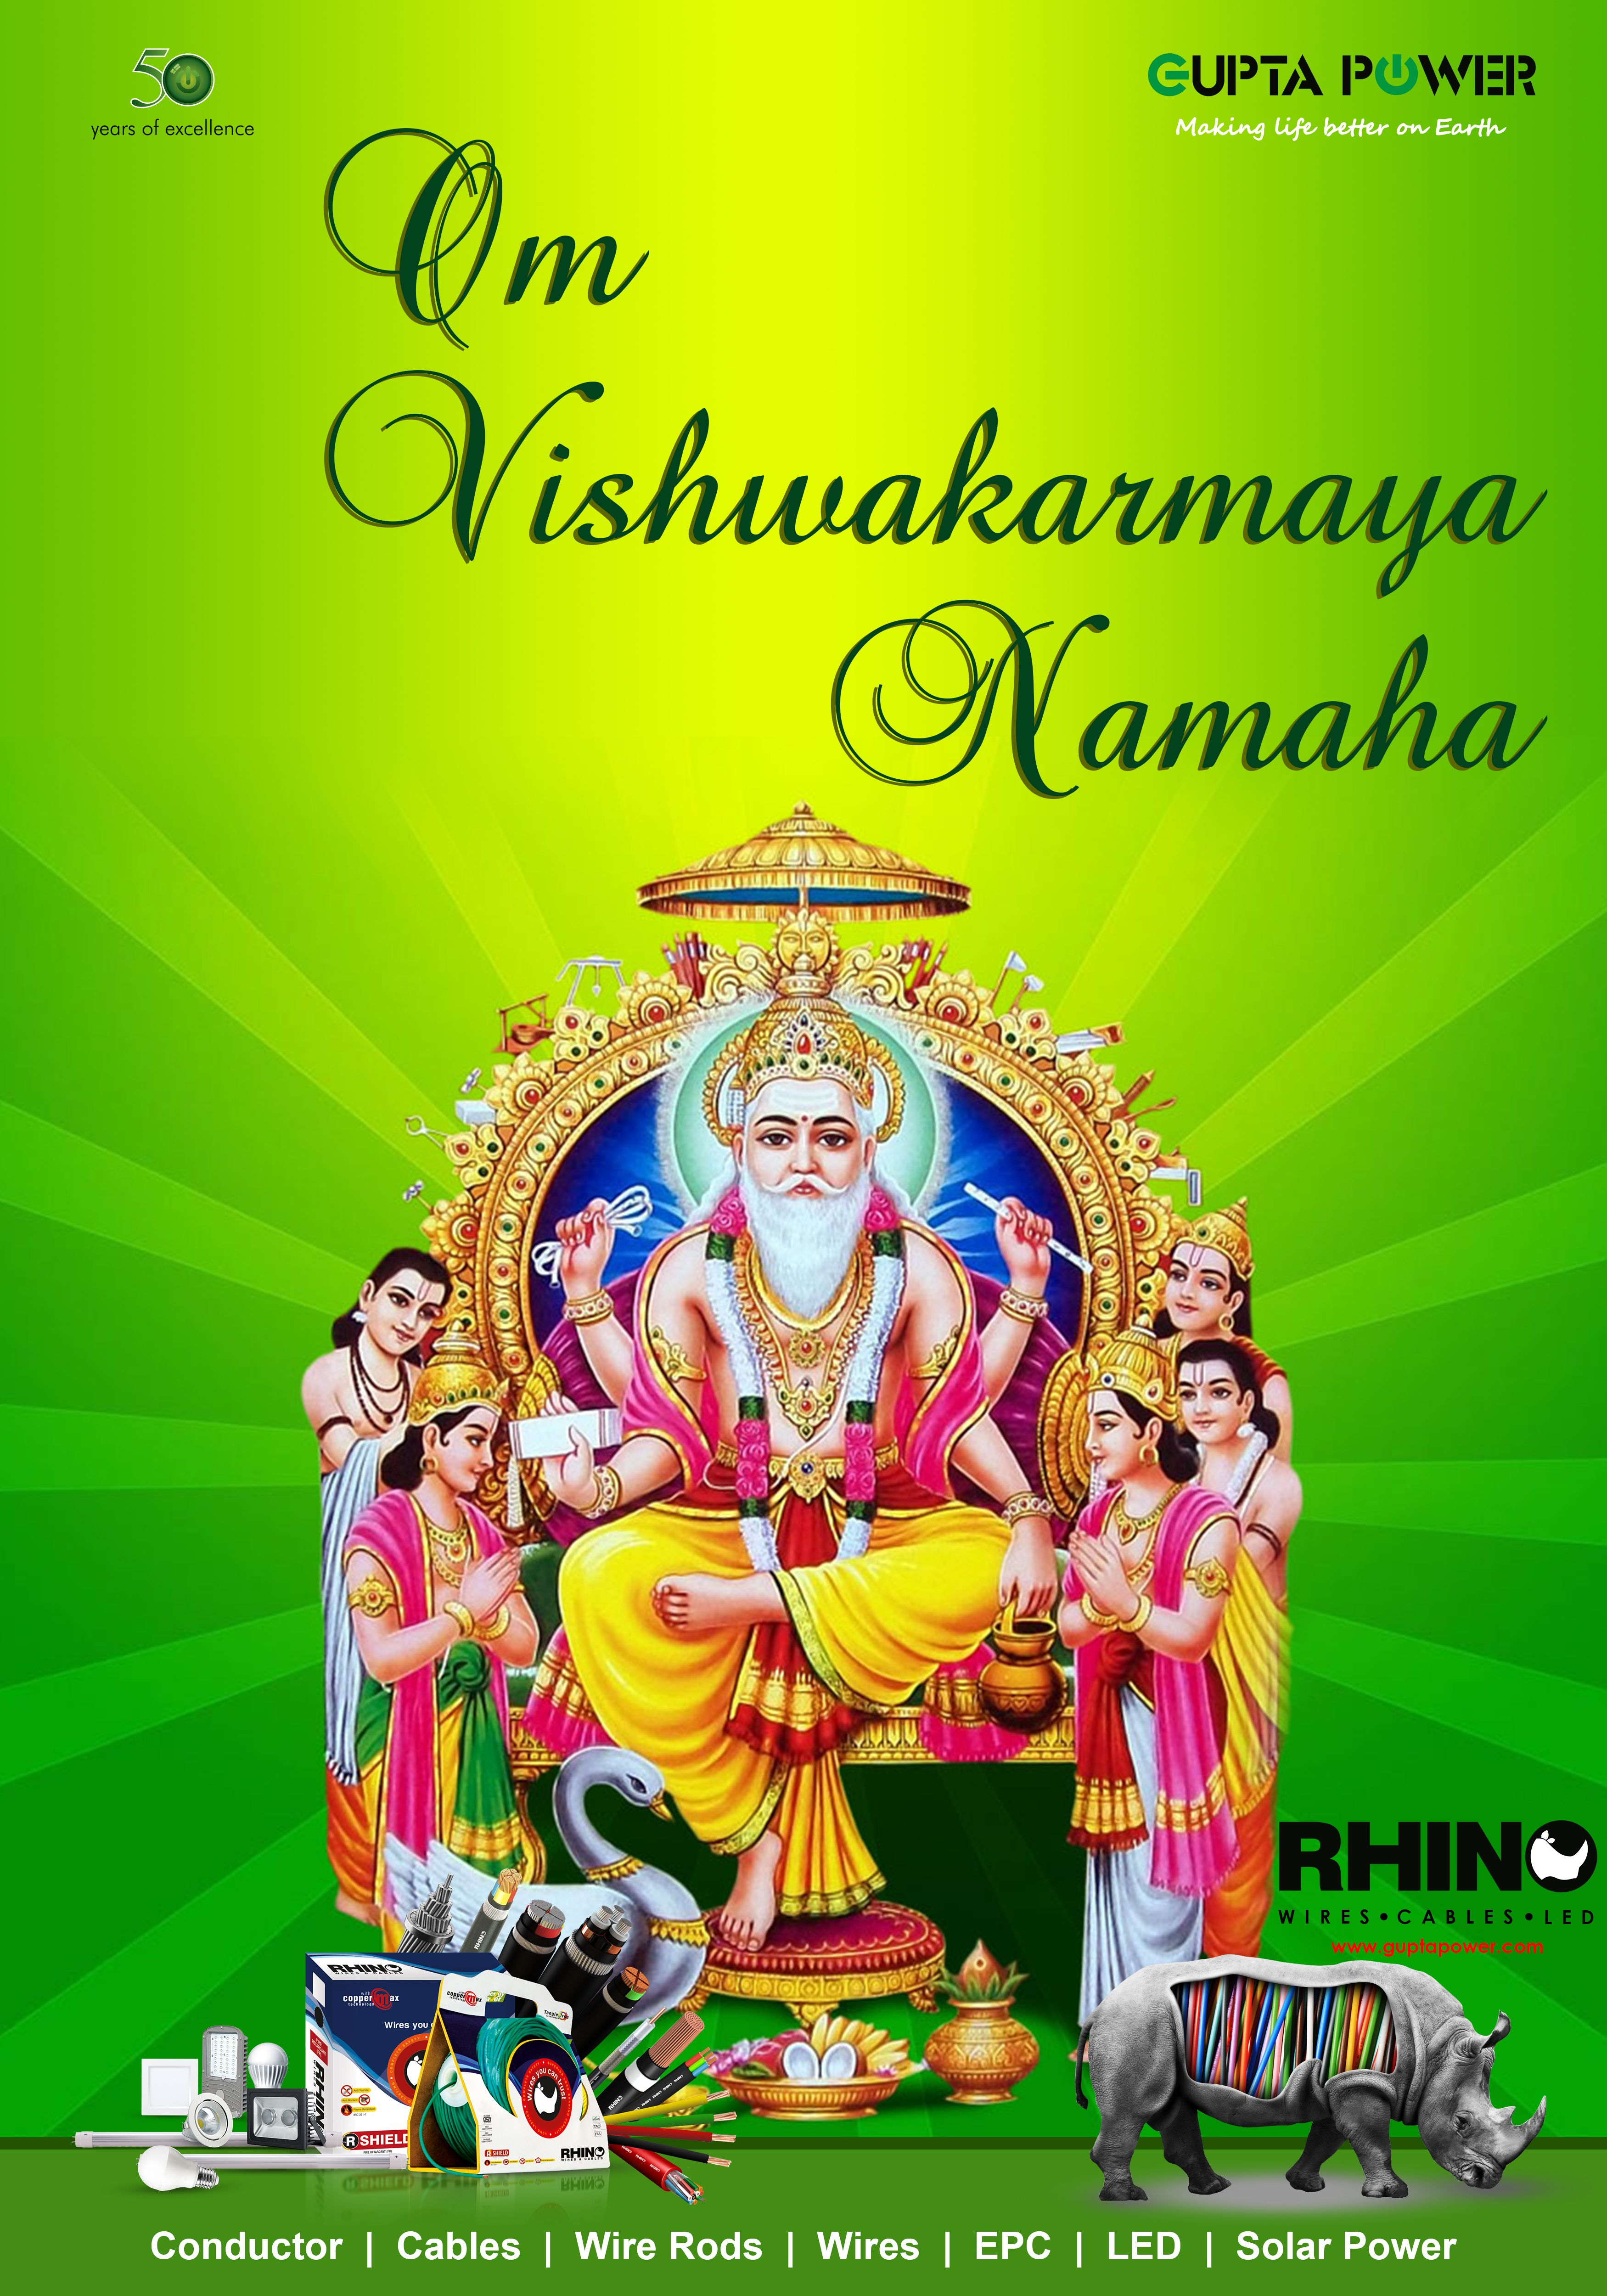 Pin by northwestgroup on happy vishwakarma day pinterest may lord vishwakarma bless you with success in all your endeavors rhino wires and cables stopboris Gallery